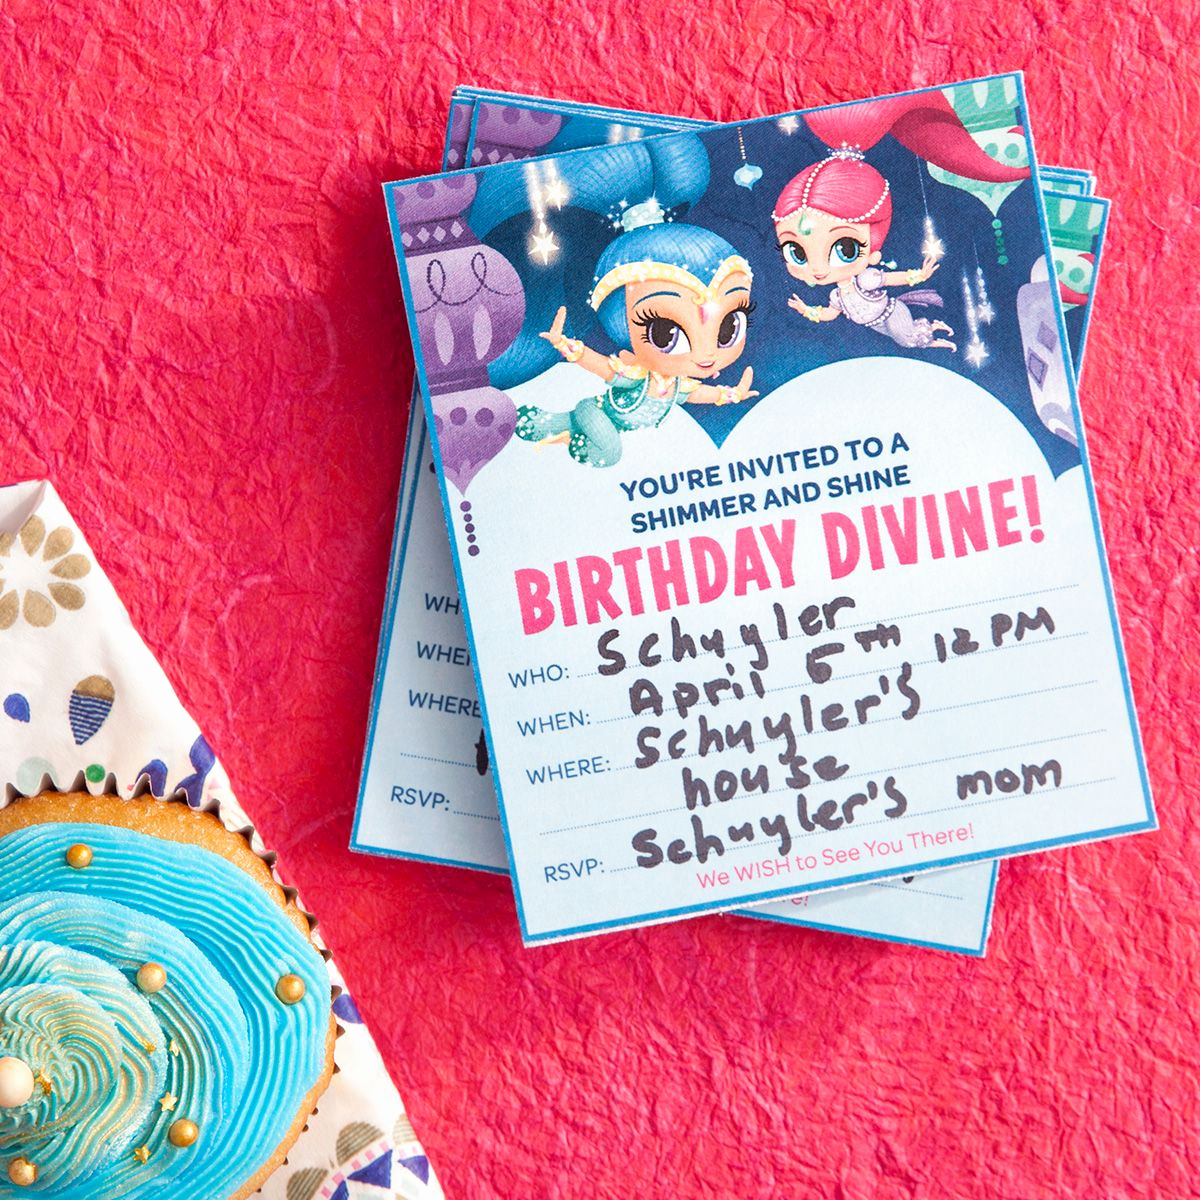 Shimmer and Shine Invitation Template Inspirational Plan A Shimmer and Shine Birthday Party